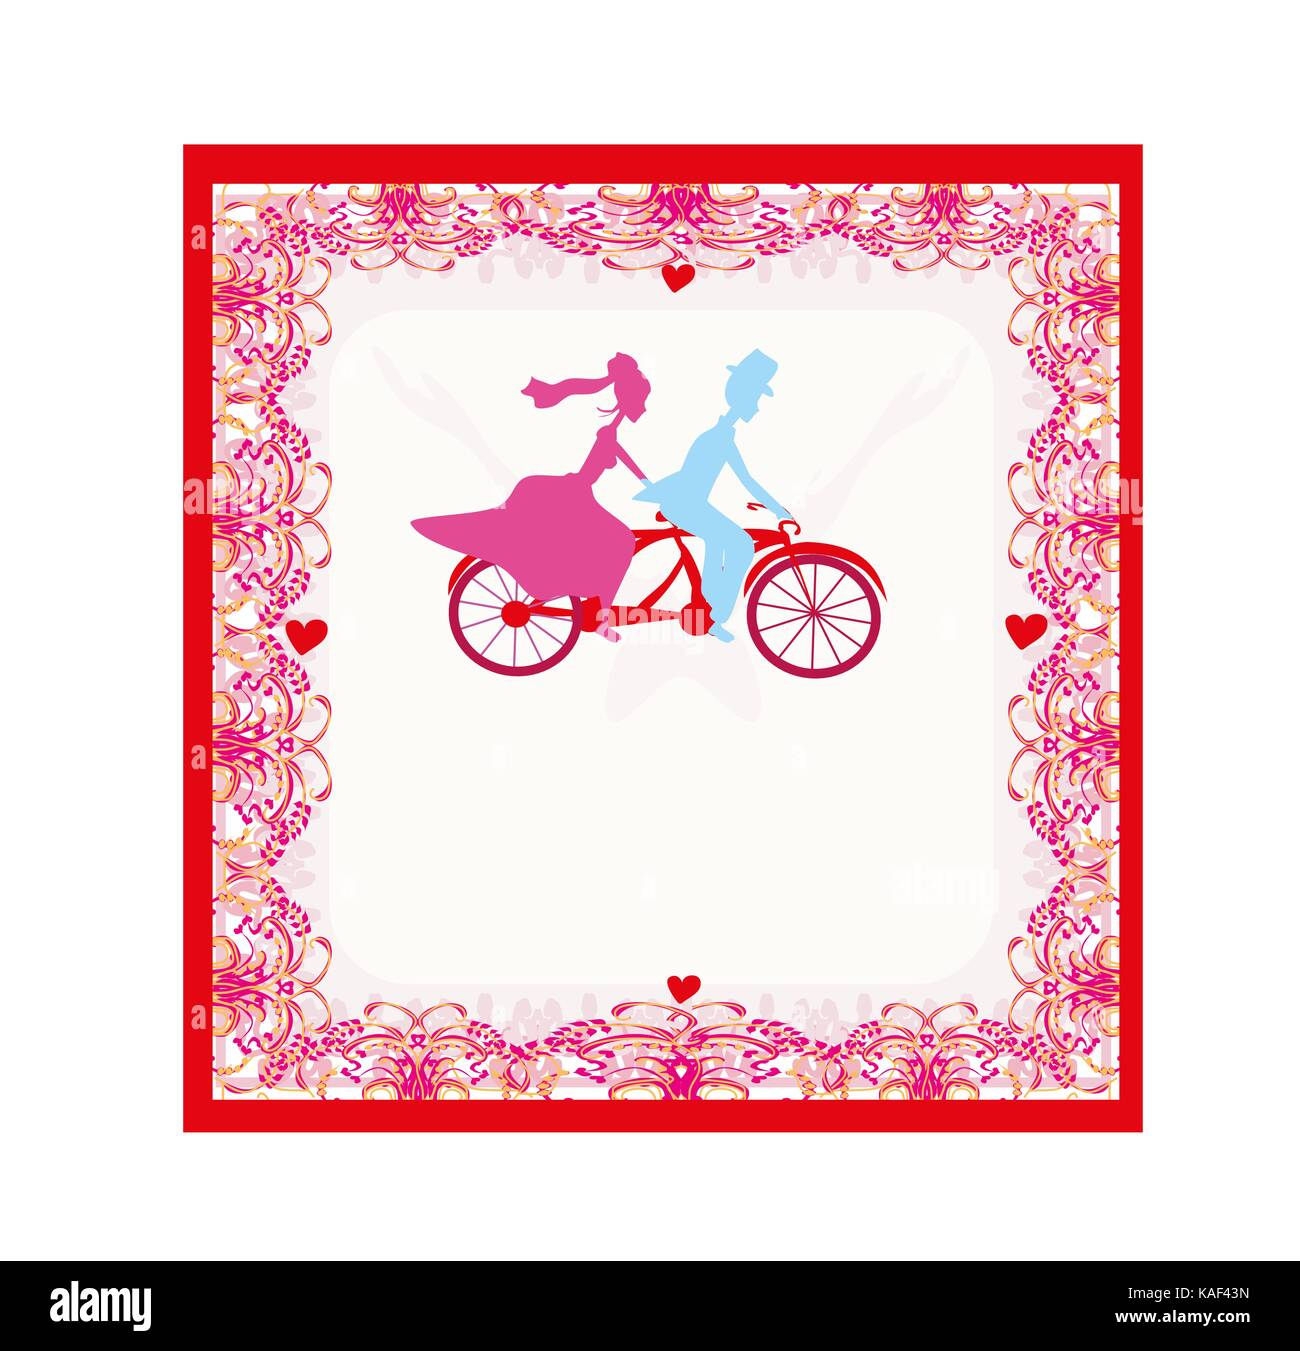 wedding invitation with bride and groom riding tandem bicycle Stock ...